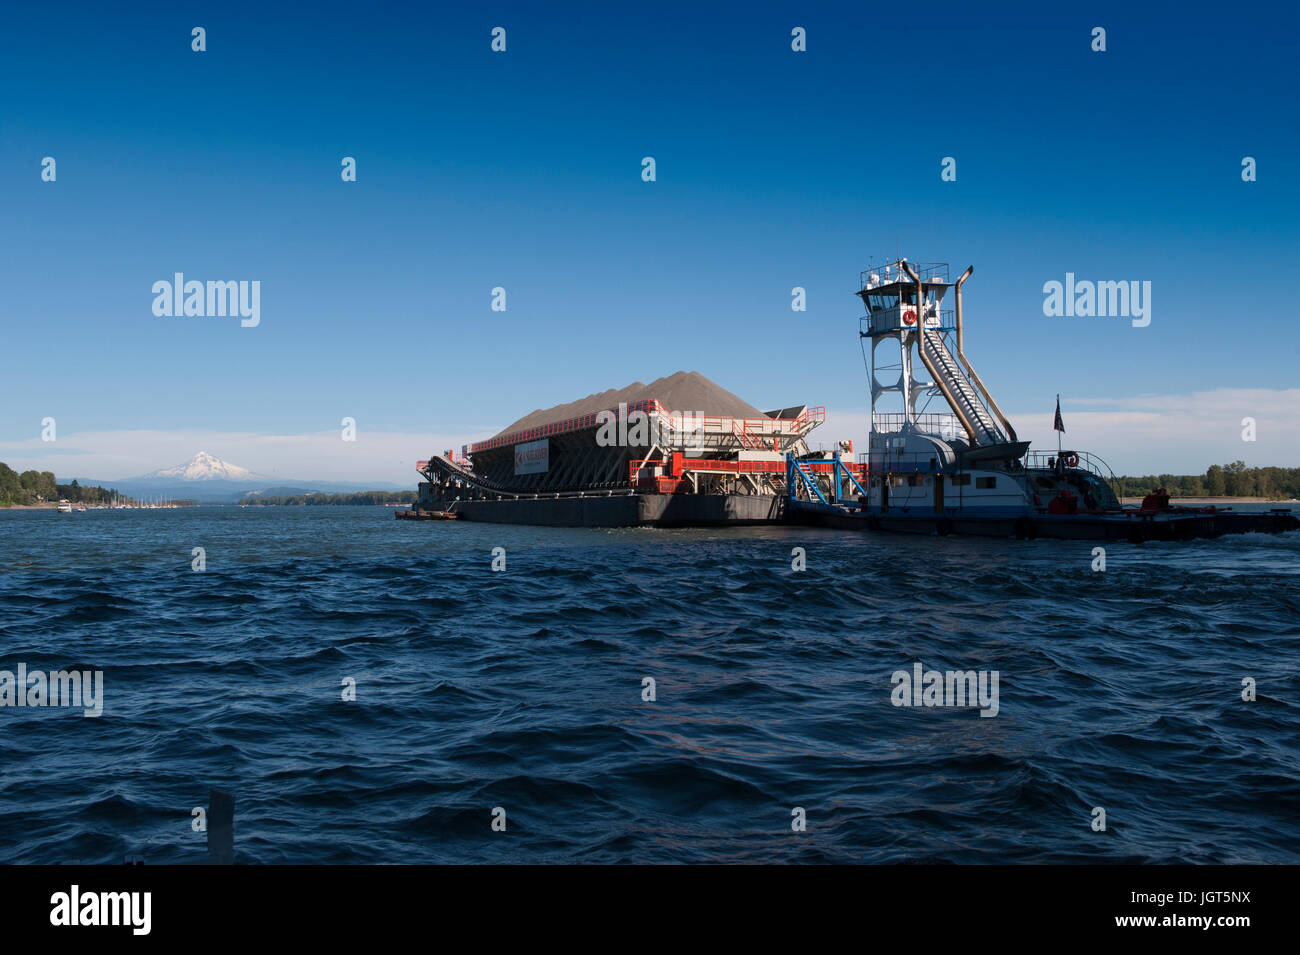 A towboat pushes an aggregate loaded barge up the Columbia River with snow capped Mt. Hood in the distance - Stock Image